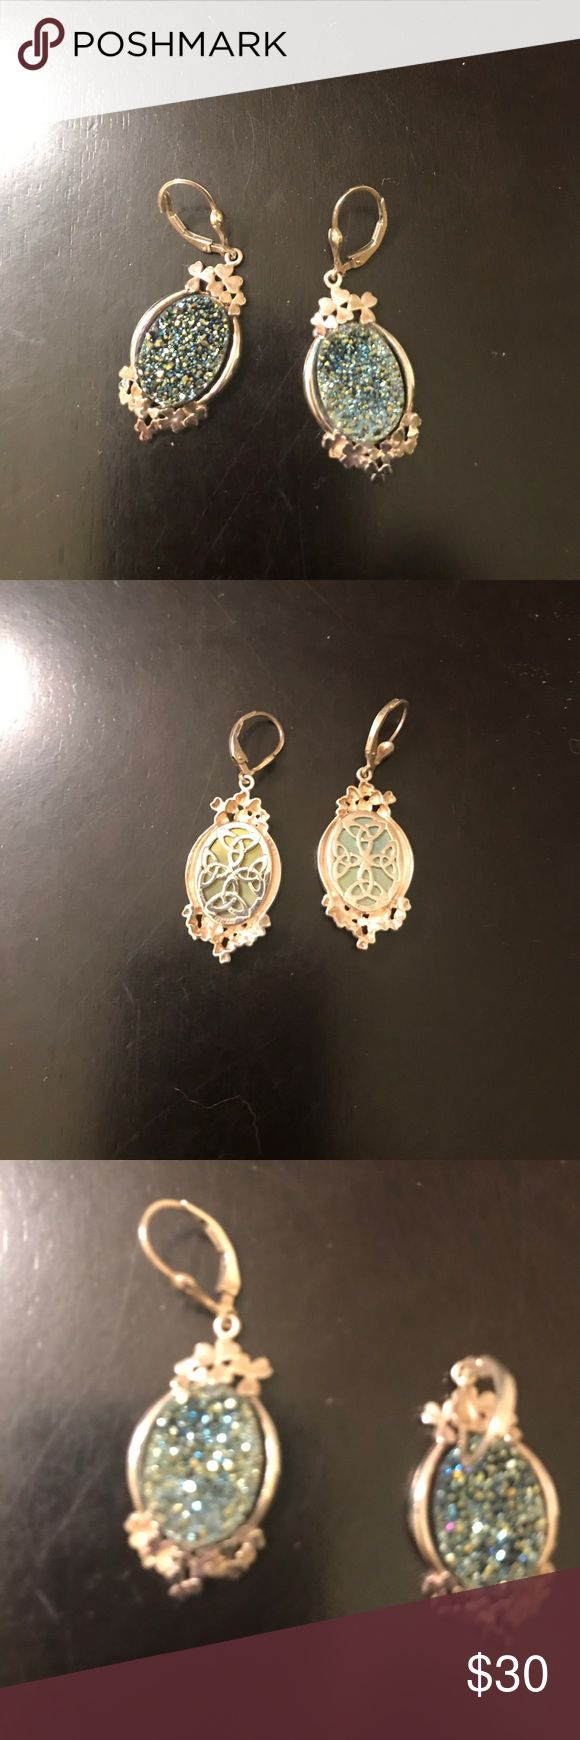 Beautiful multicolored Drusy earrings These measure over 1 1/2 inches long from the class to the end of the earrings. There are clovers around the top and the base of the Drusy.  I bought these and the QVC section of the jewelry, but I do not see .925 anywhere Jewelry Earrings